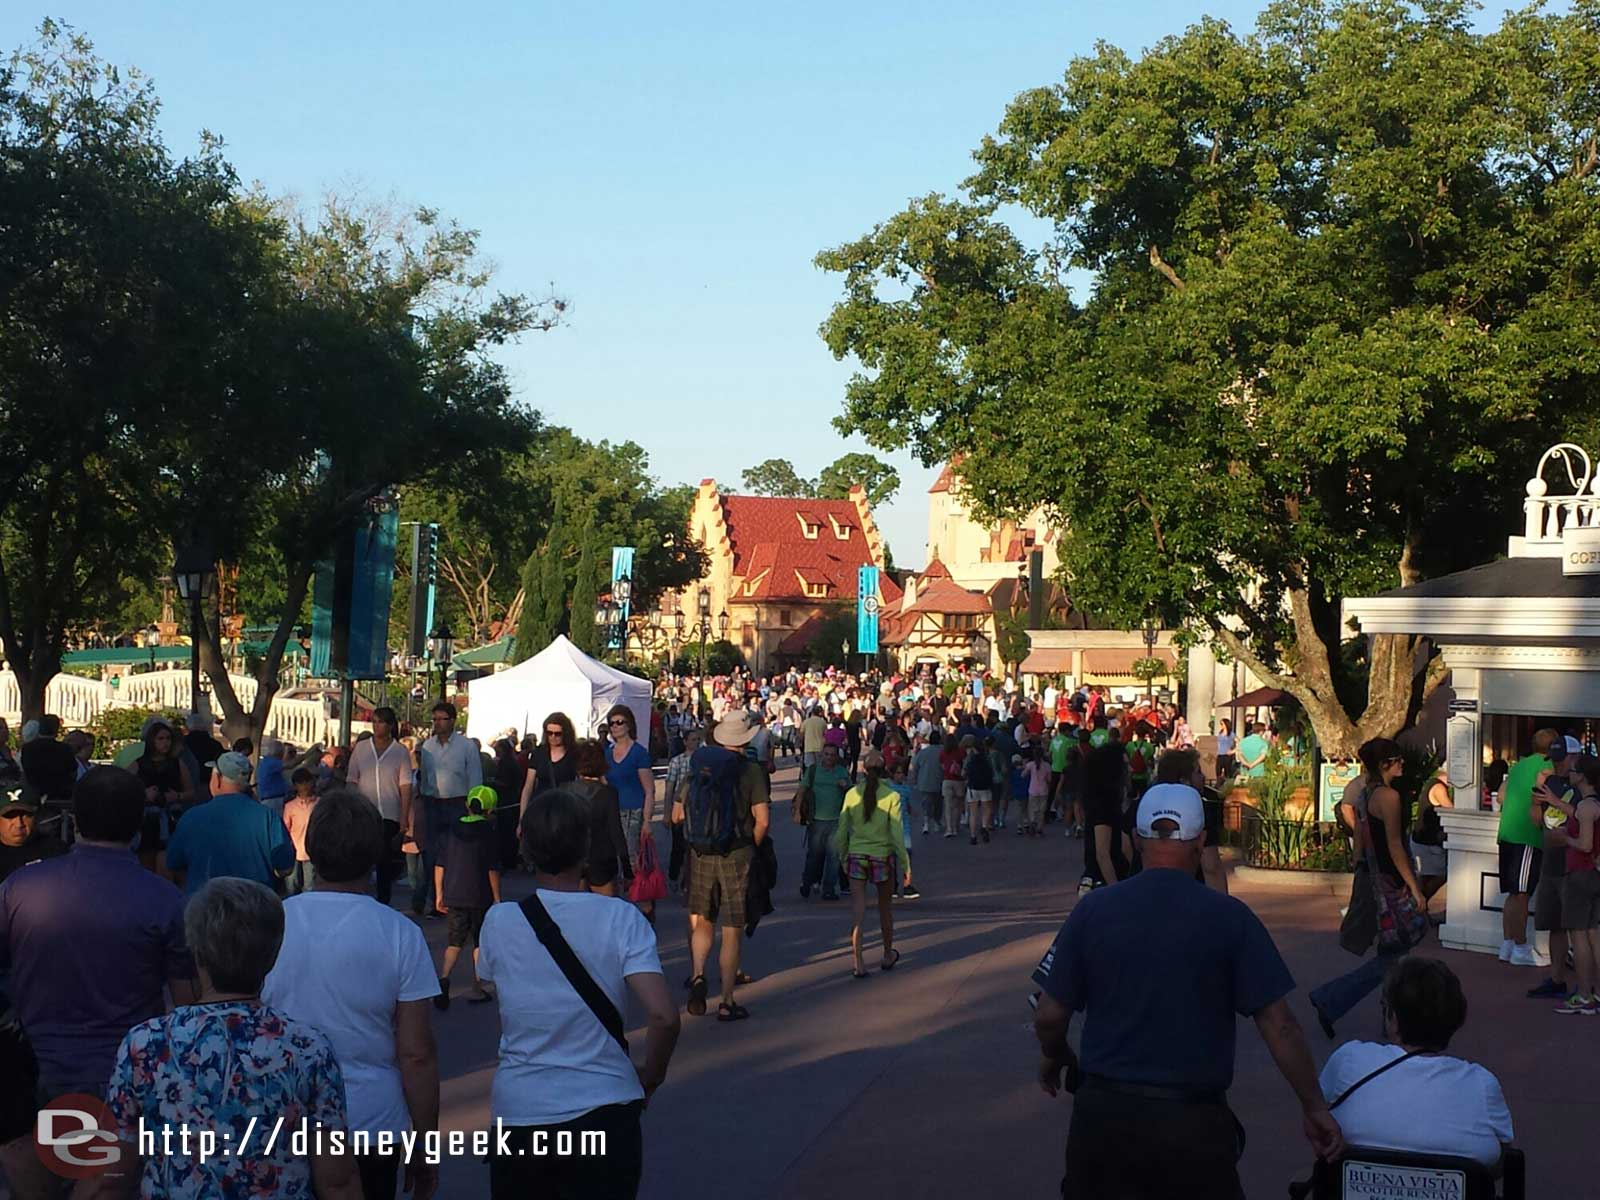 Walking around World Showcase, much more crowded today thanks to the great weather.